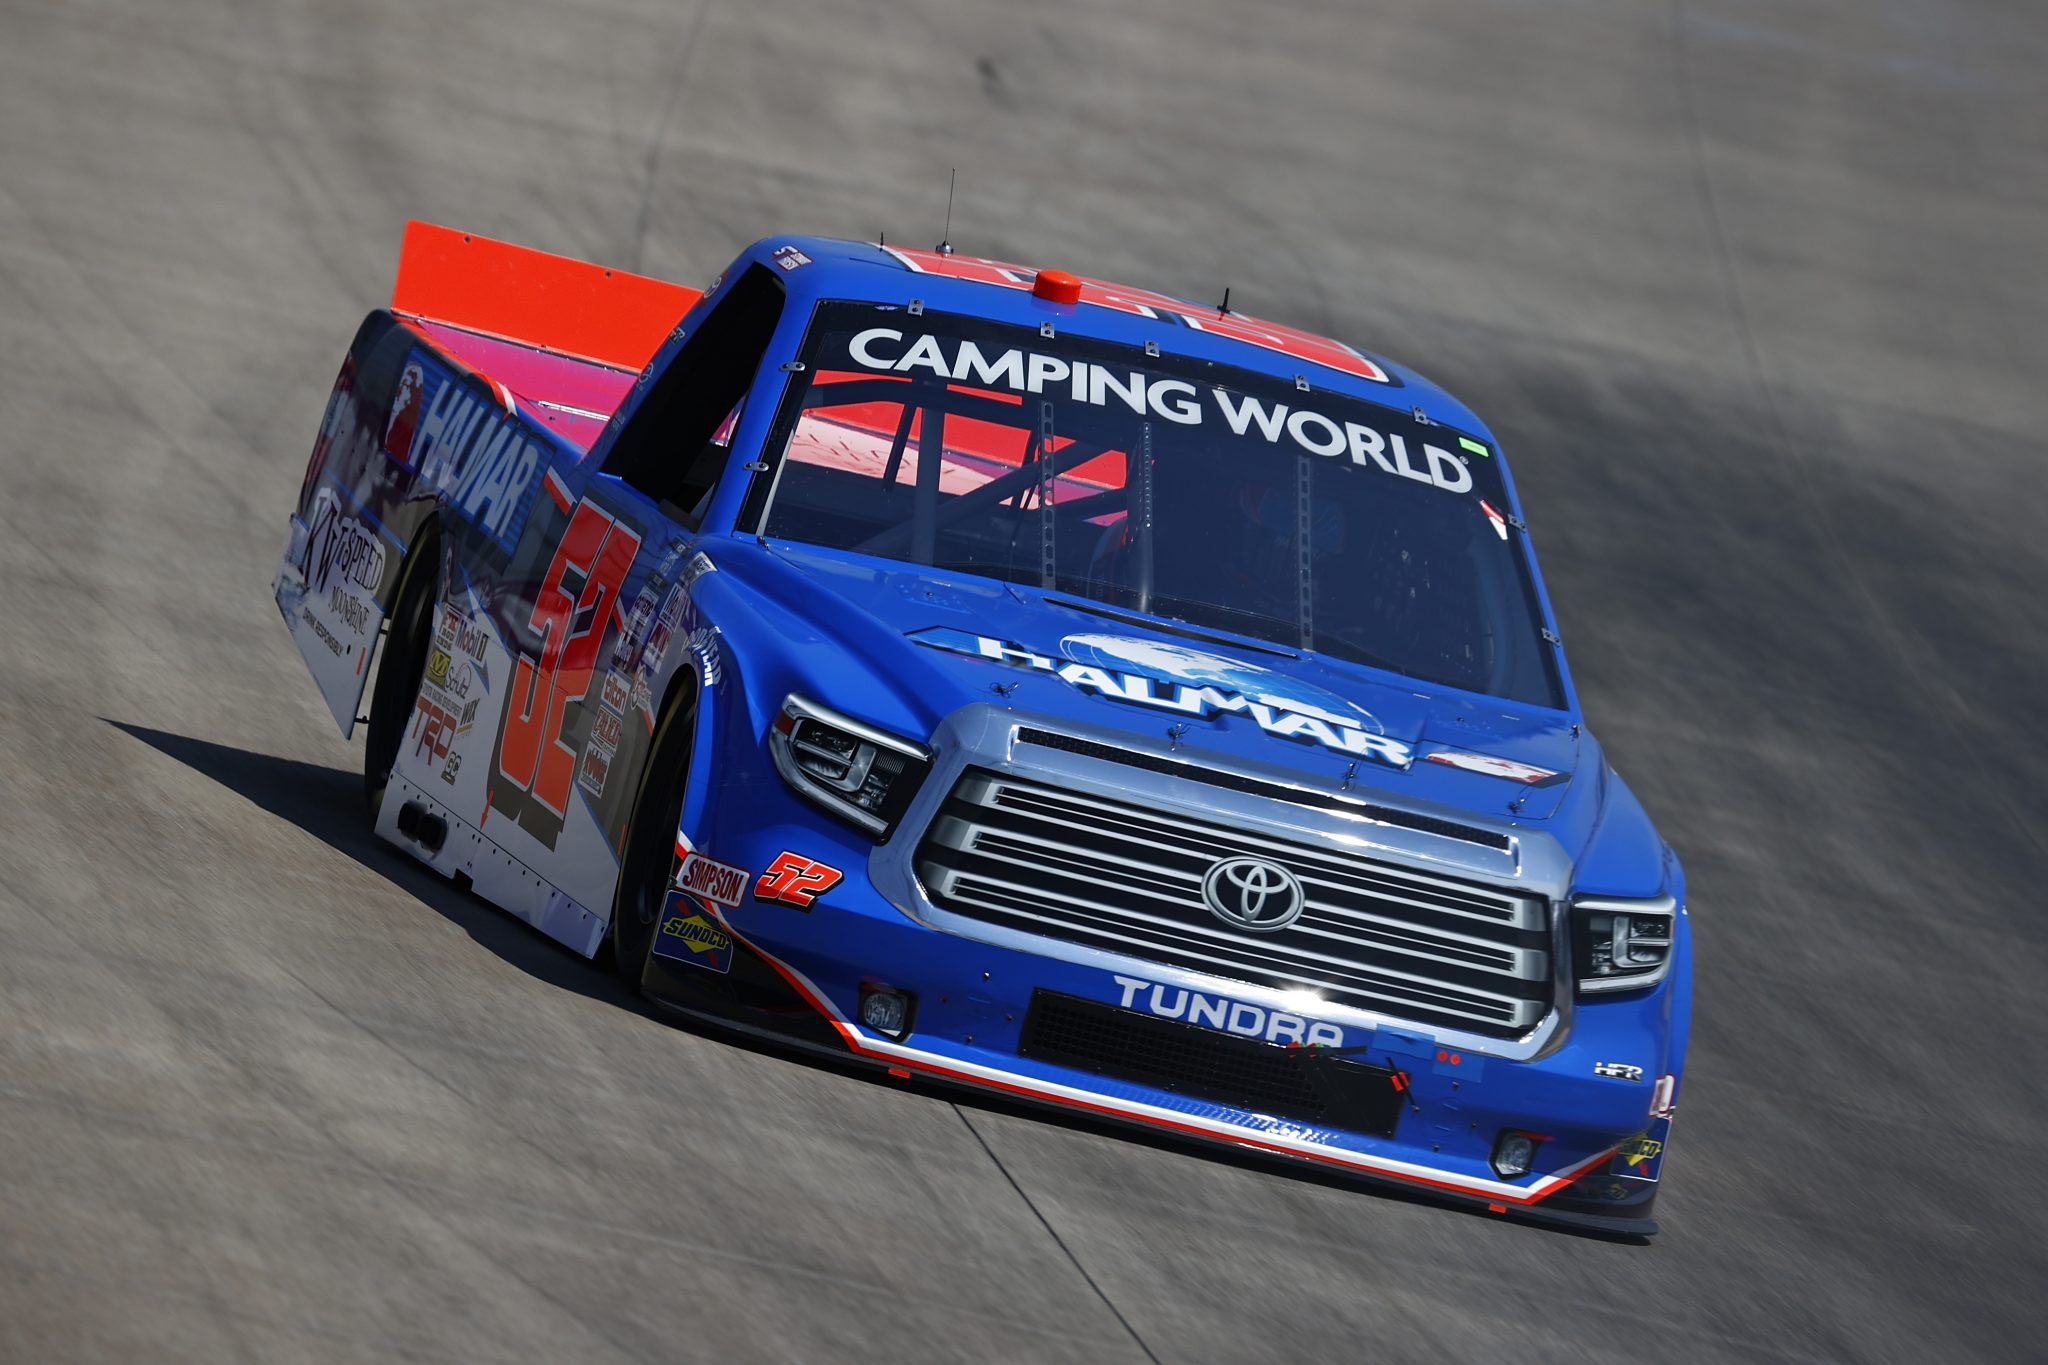 LEBANON, TENNESSEE - JUNE 18: Stewart Friesen, driver of the #52 Halmar International Toyota, drives during practice for the NASCAR Camping World Truck Series Rackley Roofing 200 at Nashville Superspeedway on June 18, 2021 in Lebanon, Tennessee. (Photo by Jared C. Tilton/Getty Images) | Getty Images